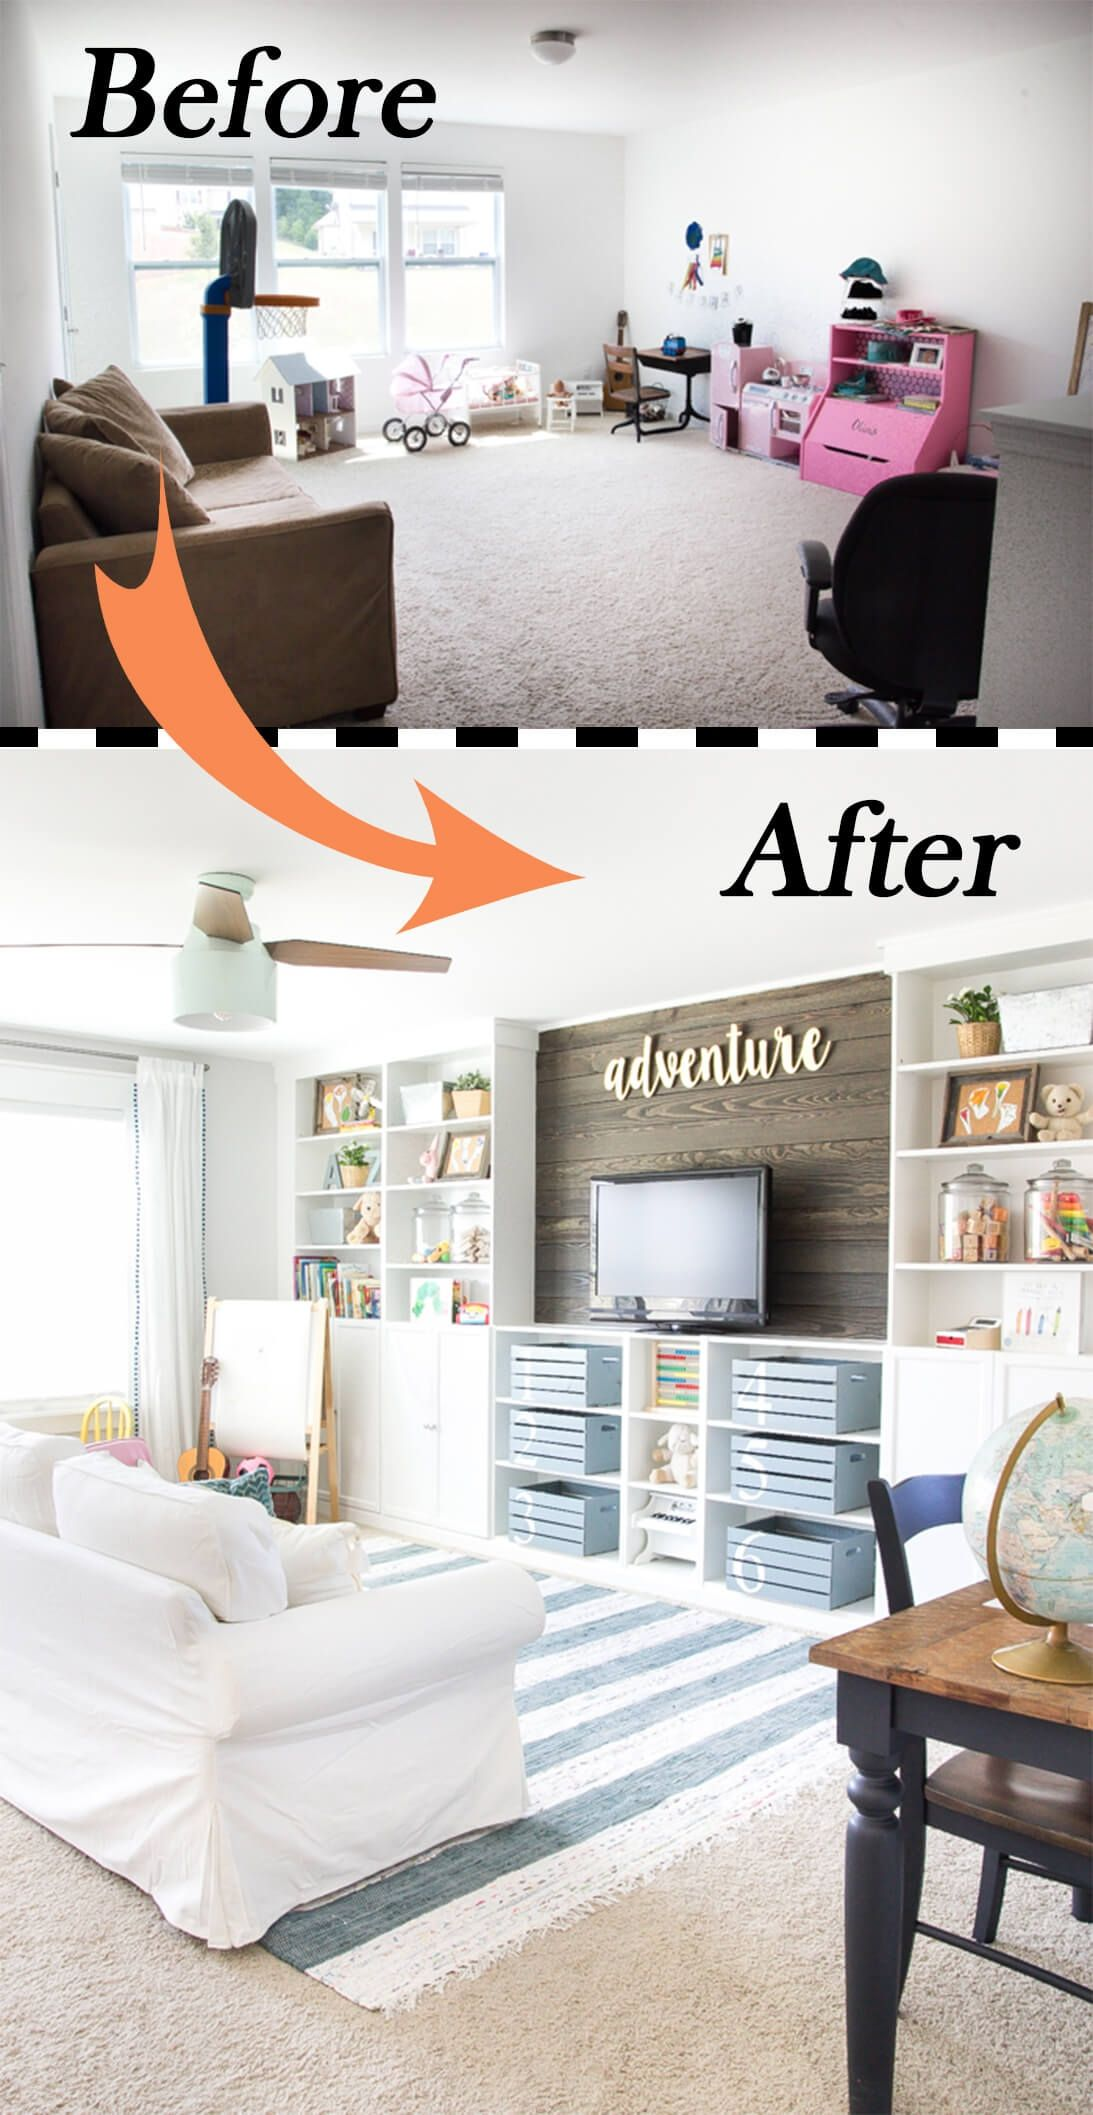 living room makeover ideas (with images) | budget friendly